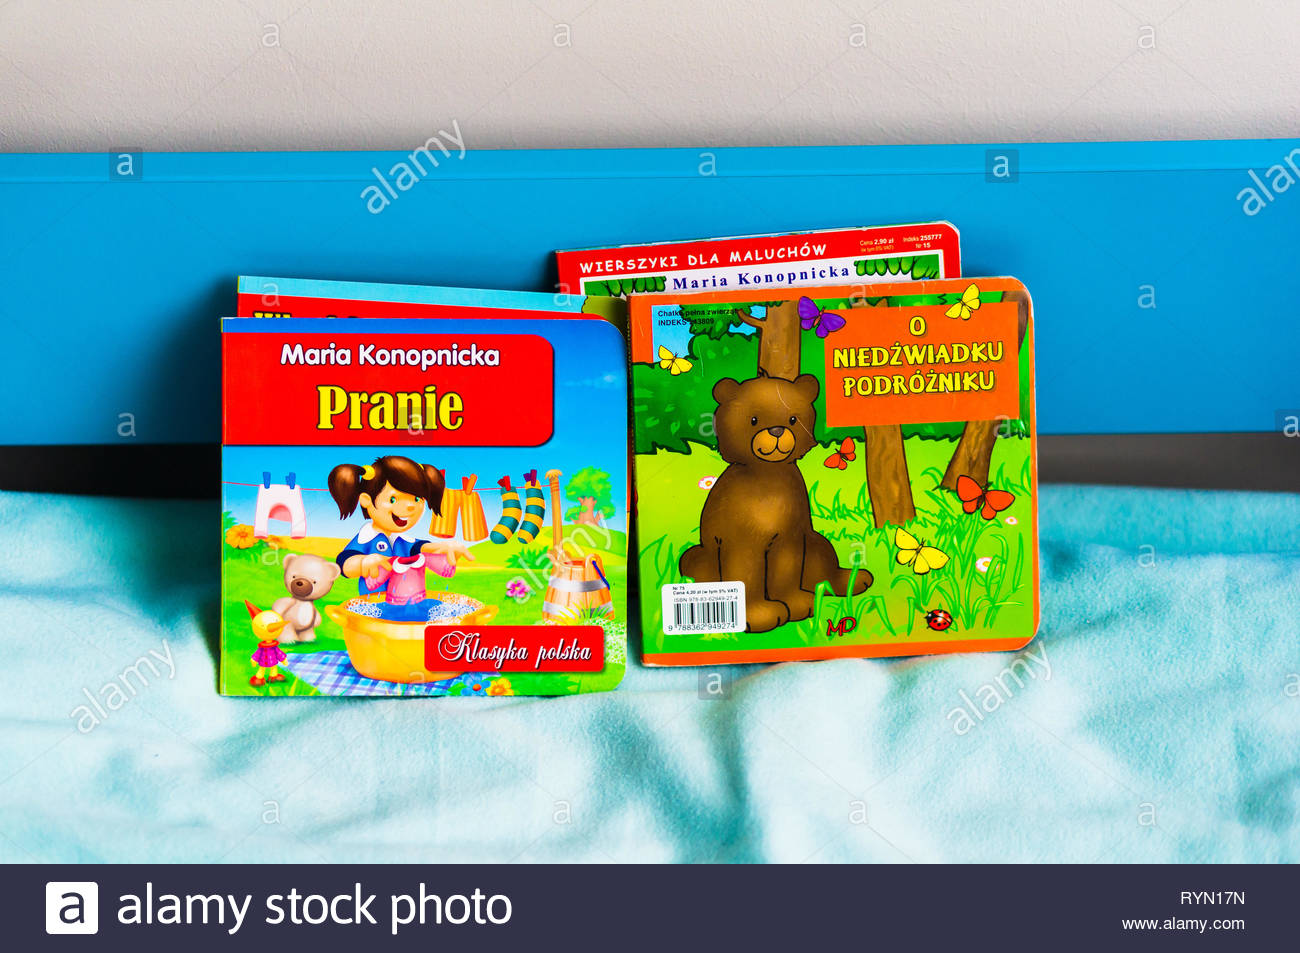 Poznan, Poland - November 18, 2018: Colorful Polish books on a blue bed with soft sheet. Stock Photo